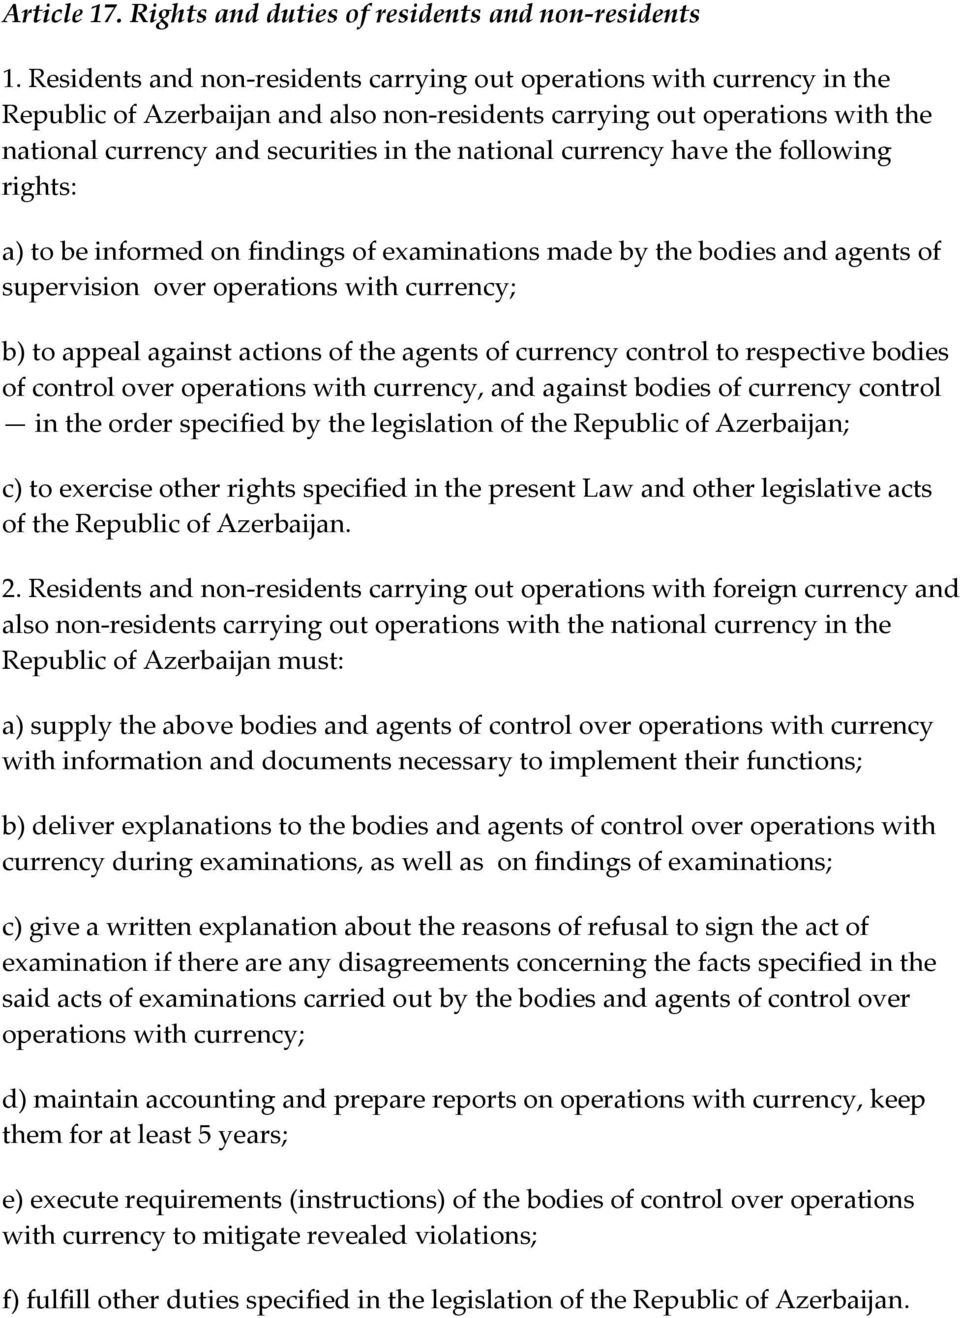 national currency have the following rights: a) to be informed on findings of examinations made by the bodies and agents of supervision over operations with currency; b) to appeal against actions of